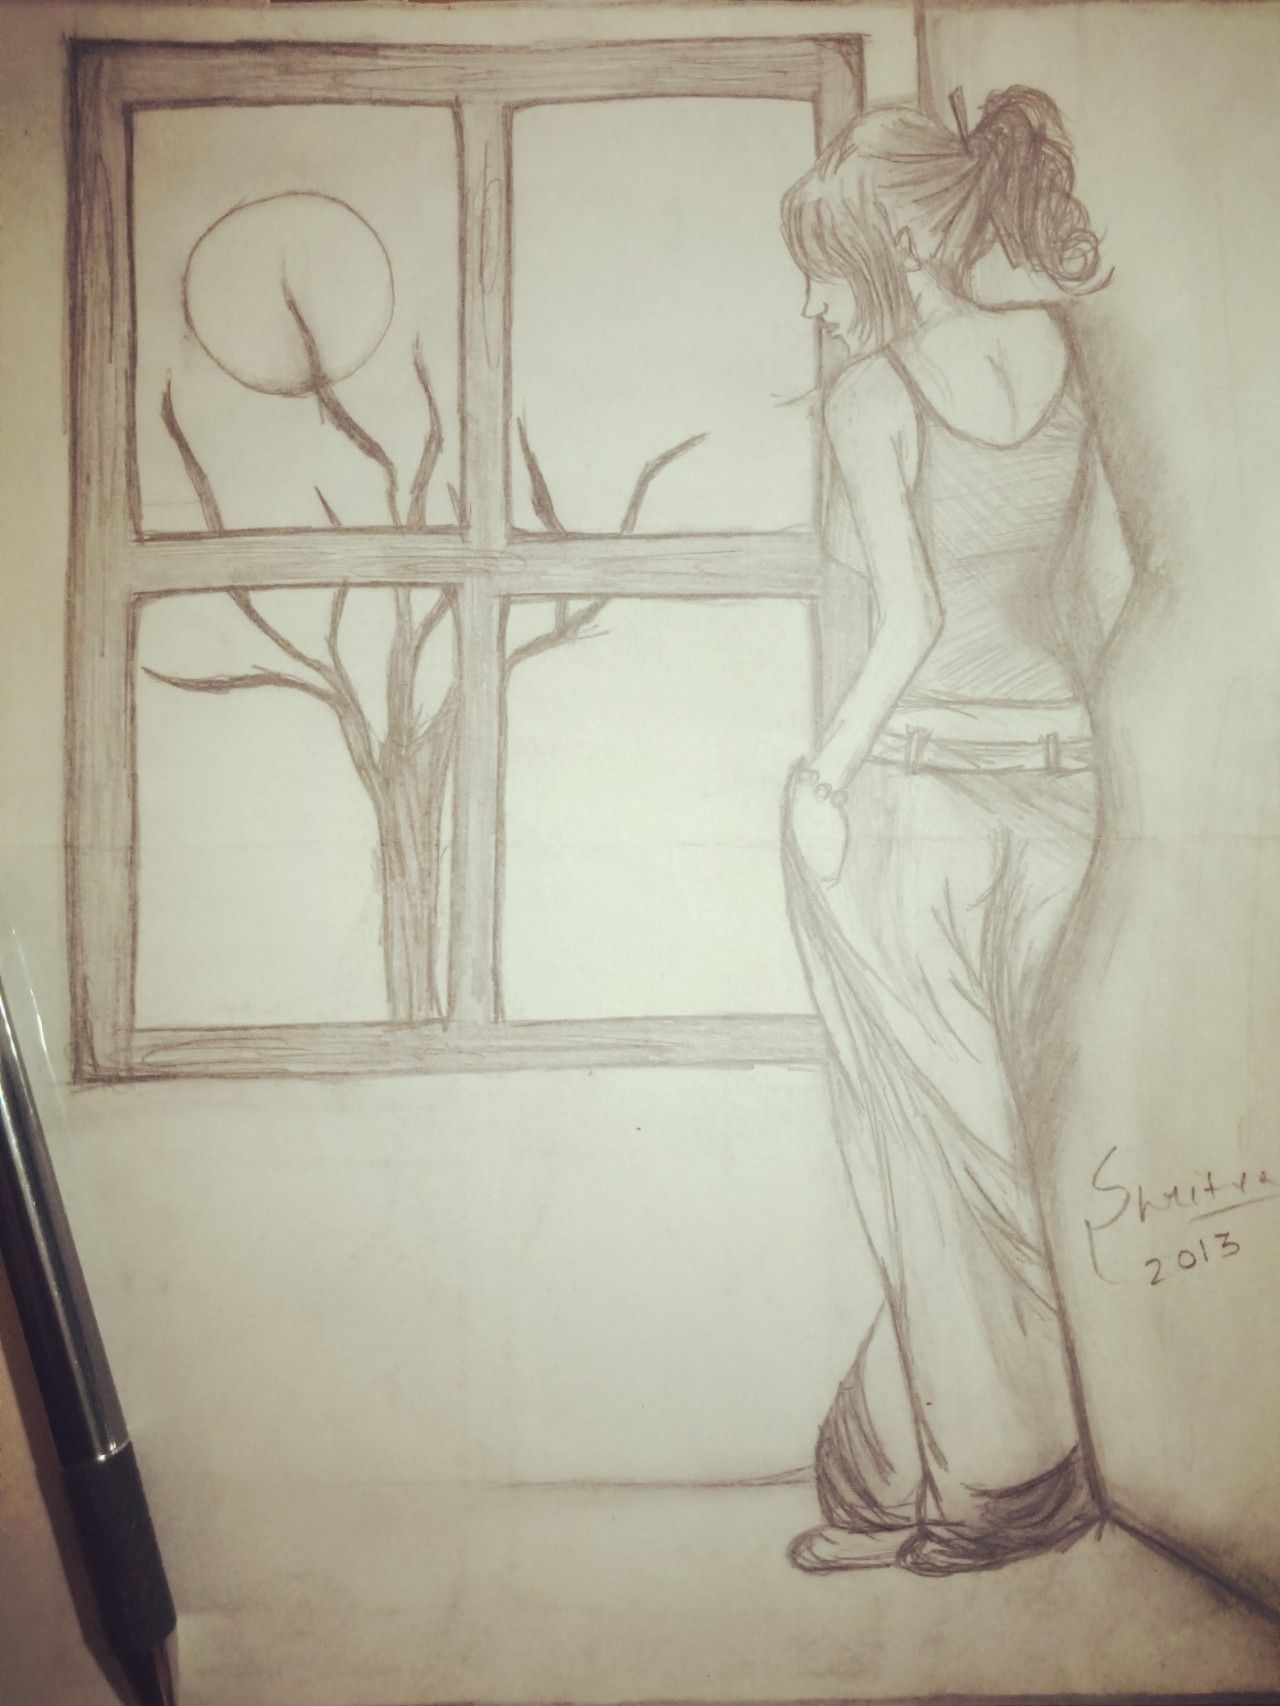 Lonely Girl Pencil Sketch Sketches Female Sketch Lonely Girl